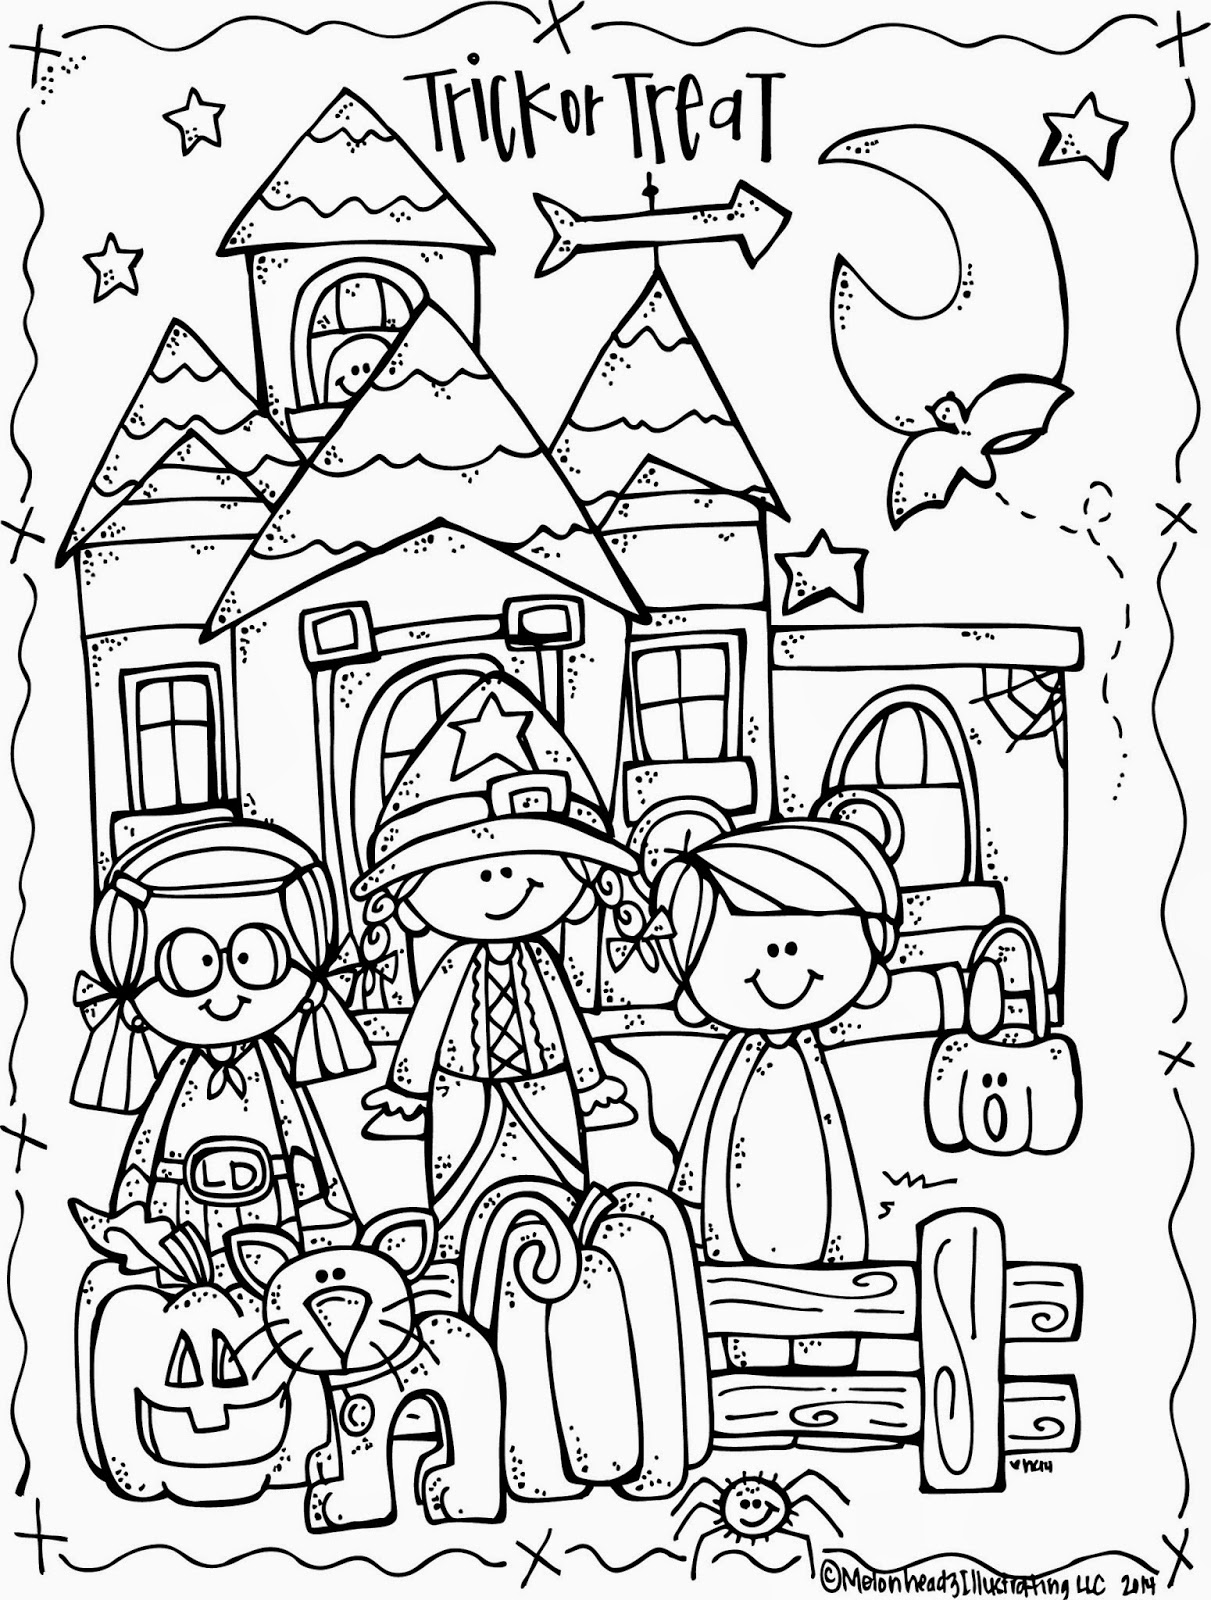 MelonHeadz Lucy Doris Halloween coloring page freebie